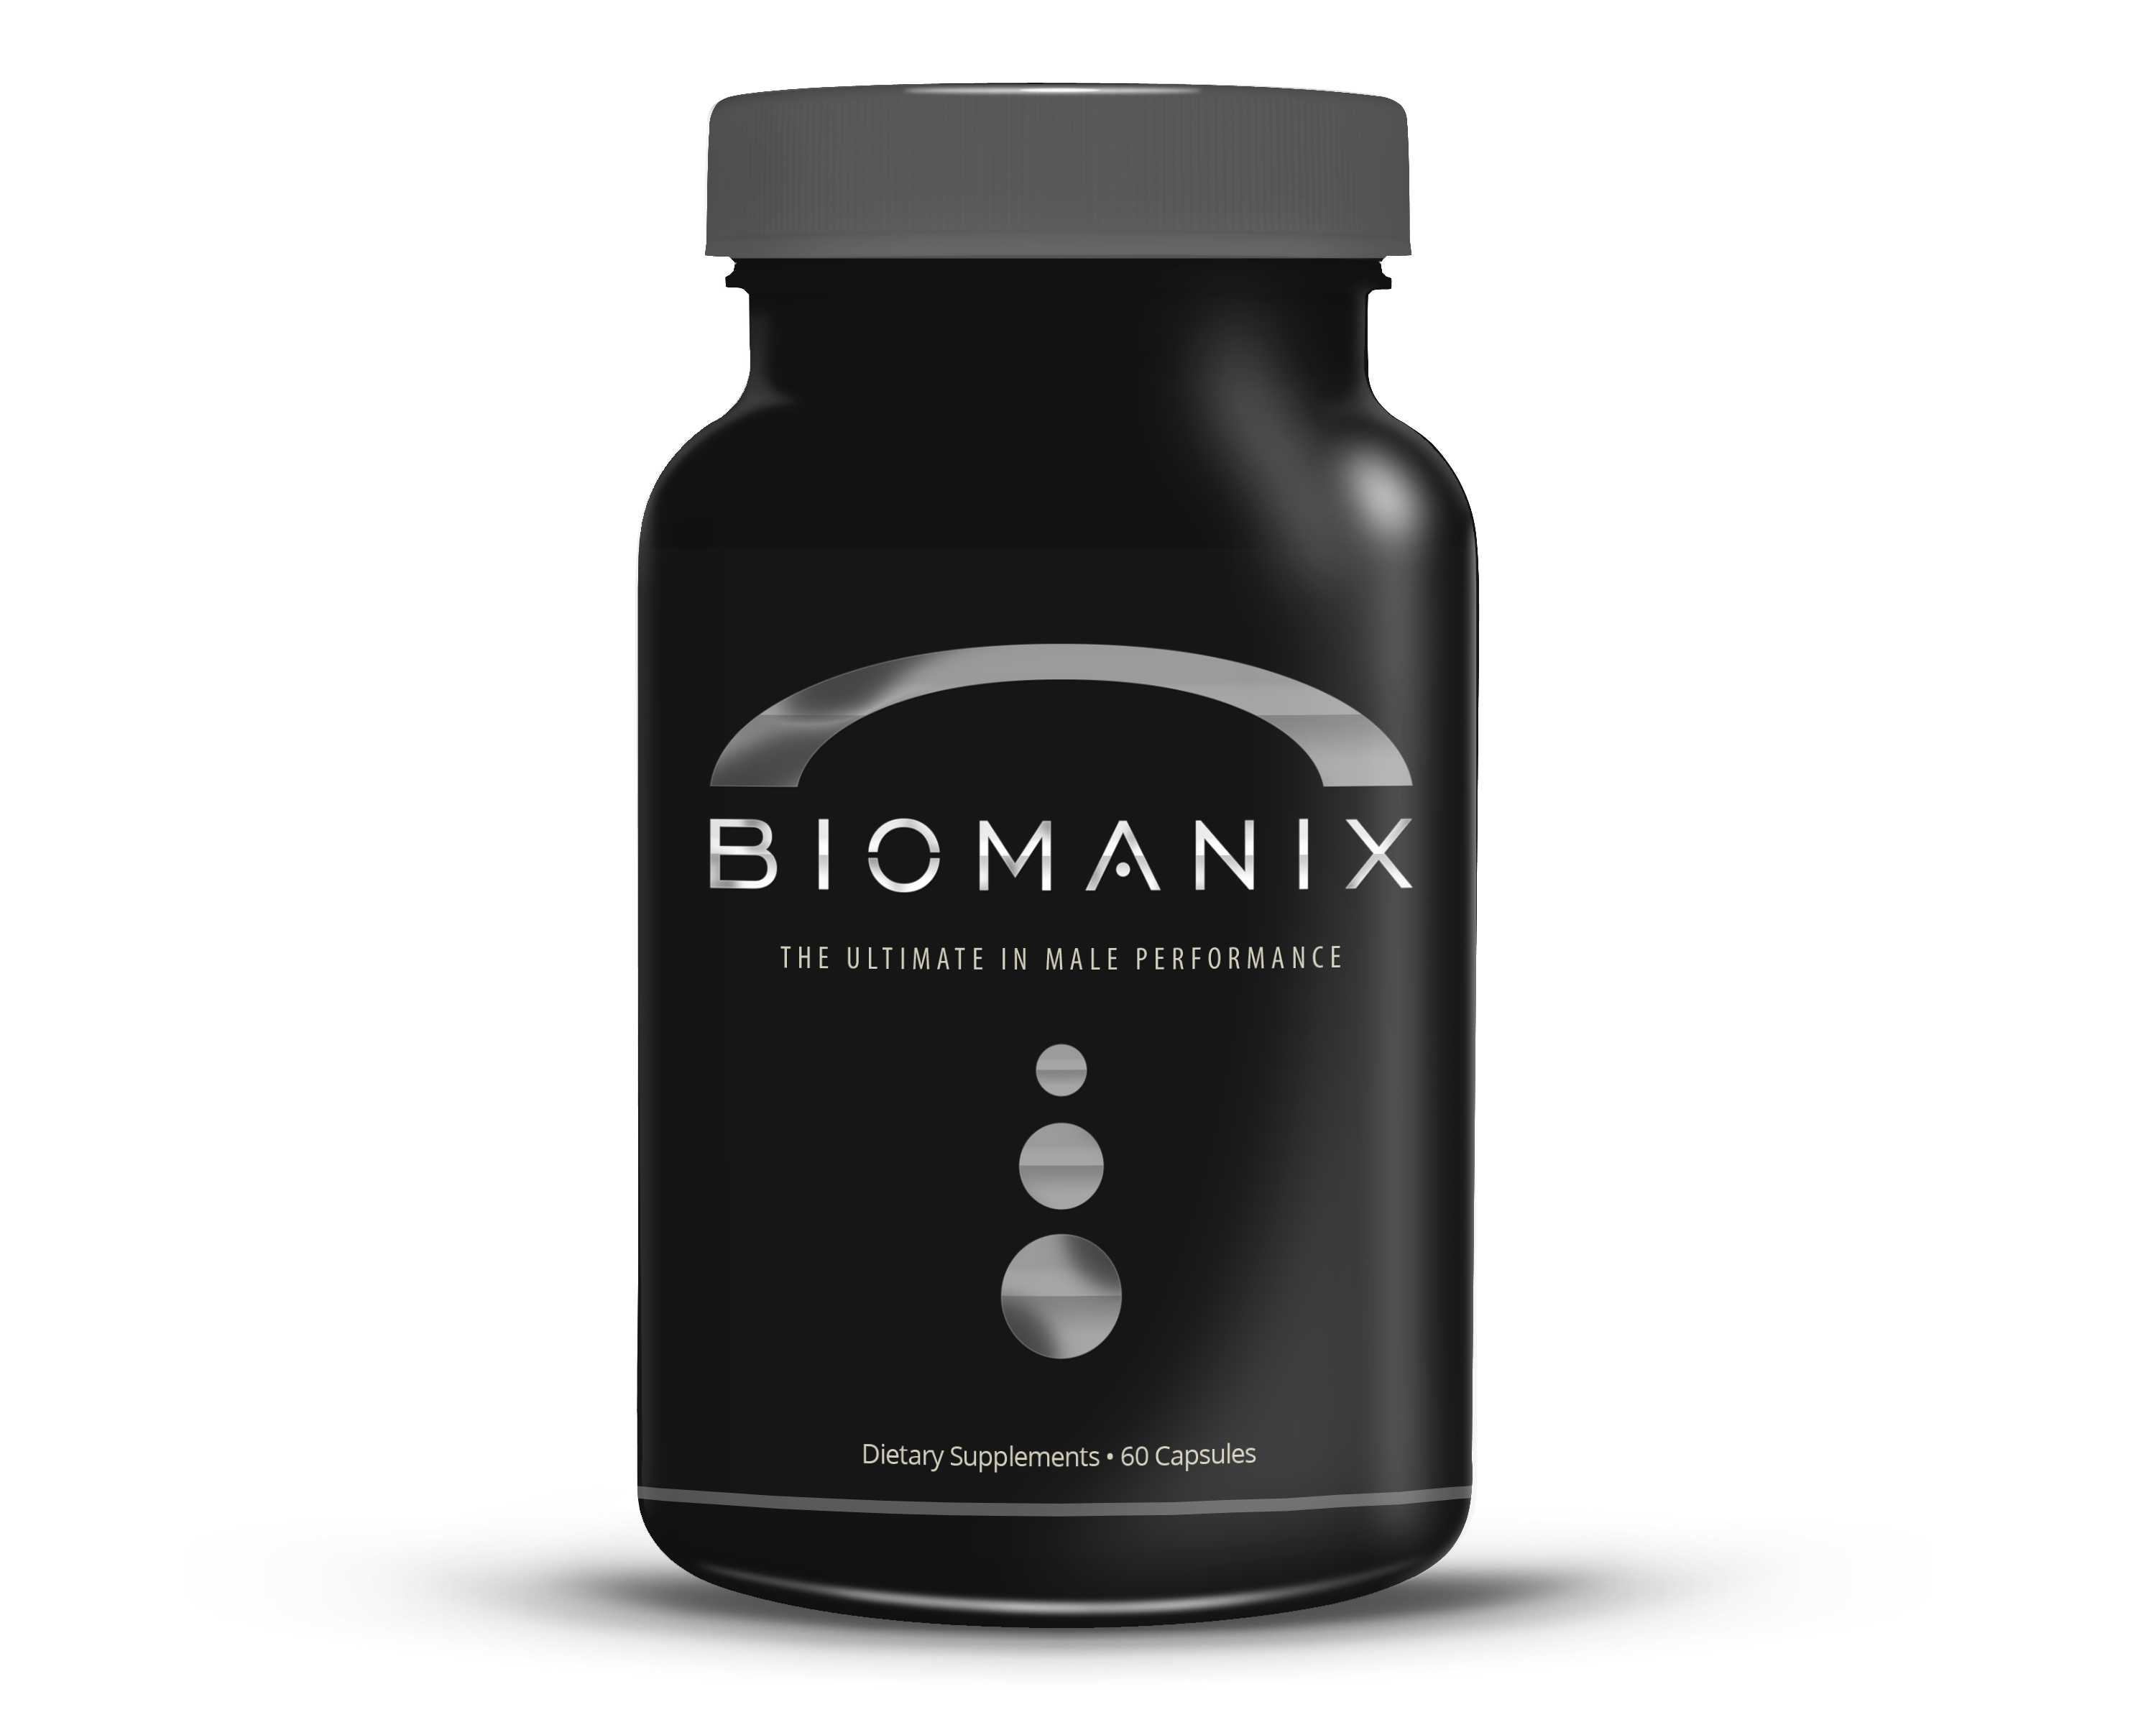 biomanix is a breakthrough male enhancement and performance